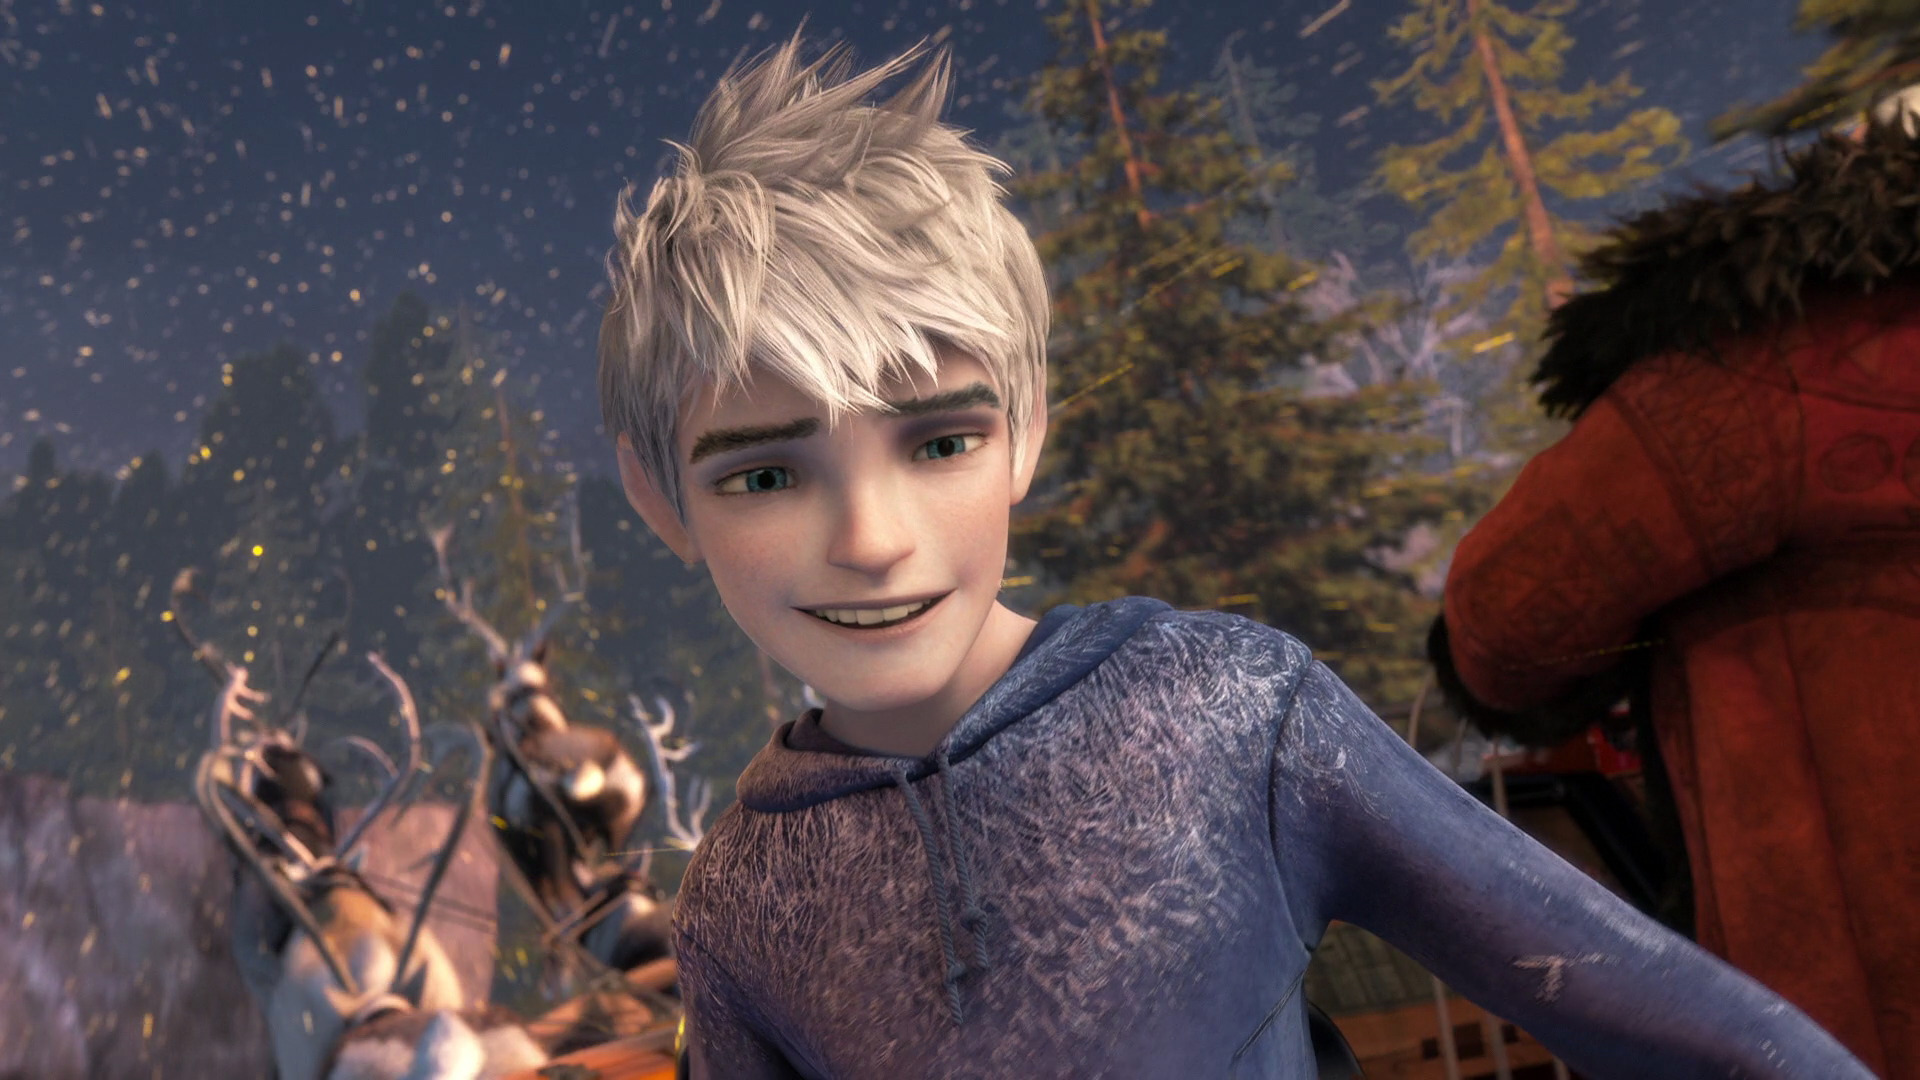 Rise of the guardians hd wallpaper background image 1920x1080 rise of the guardians wallpapers id753723 thecheapjerseys Gallery